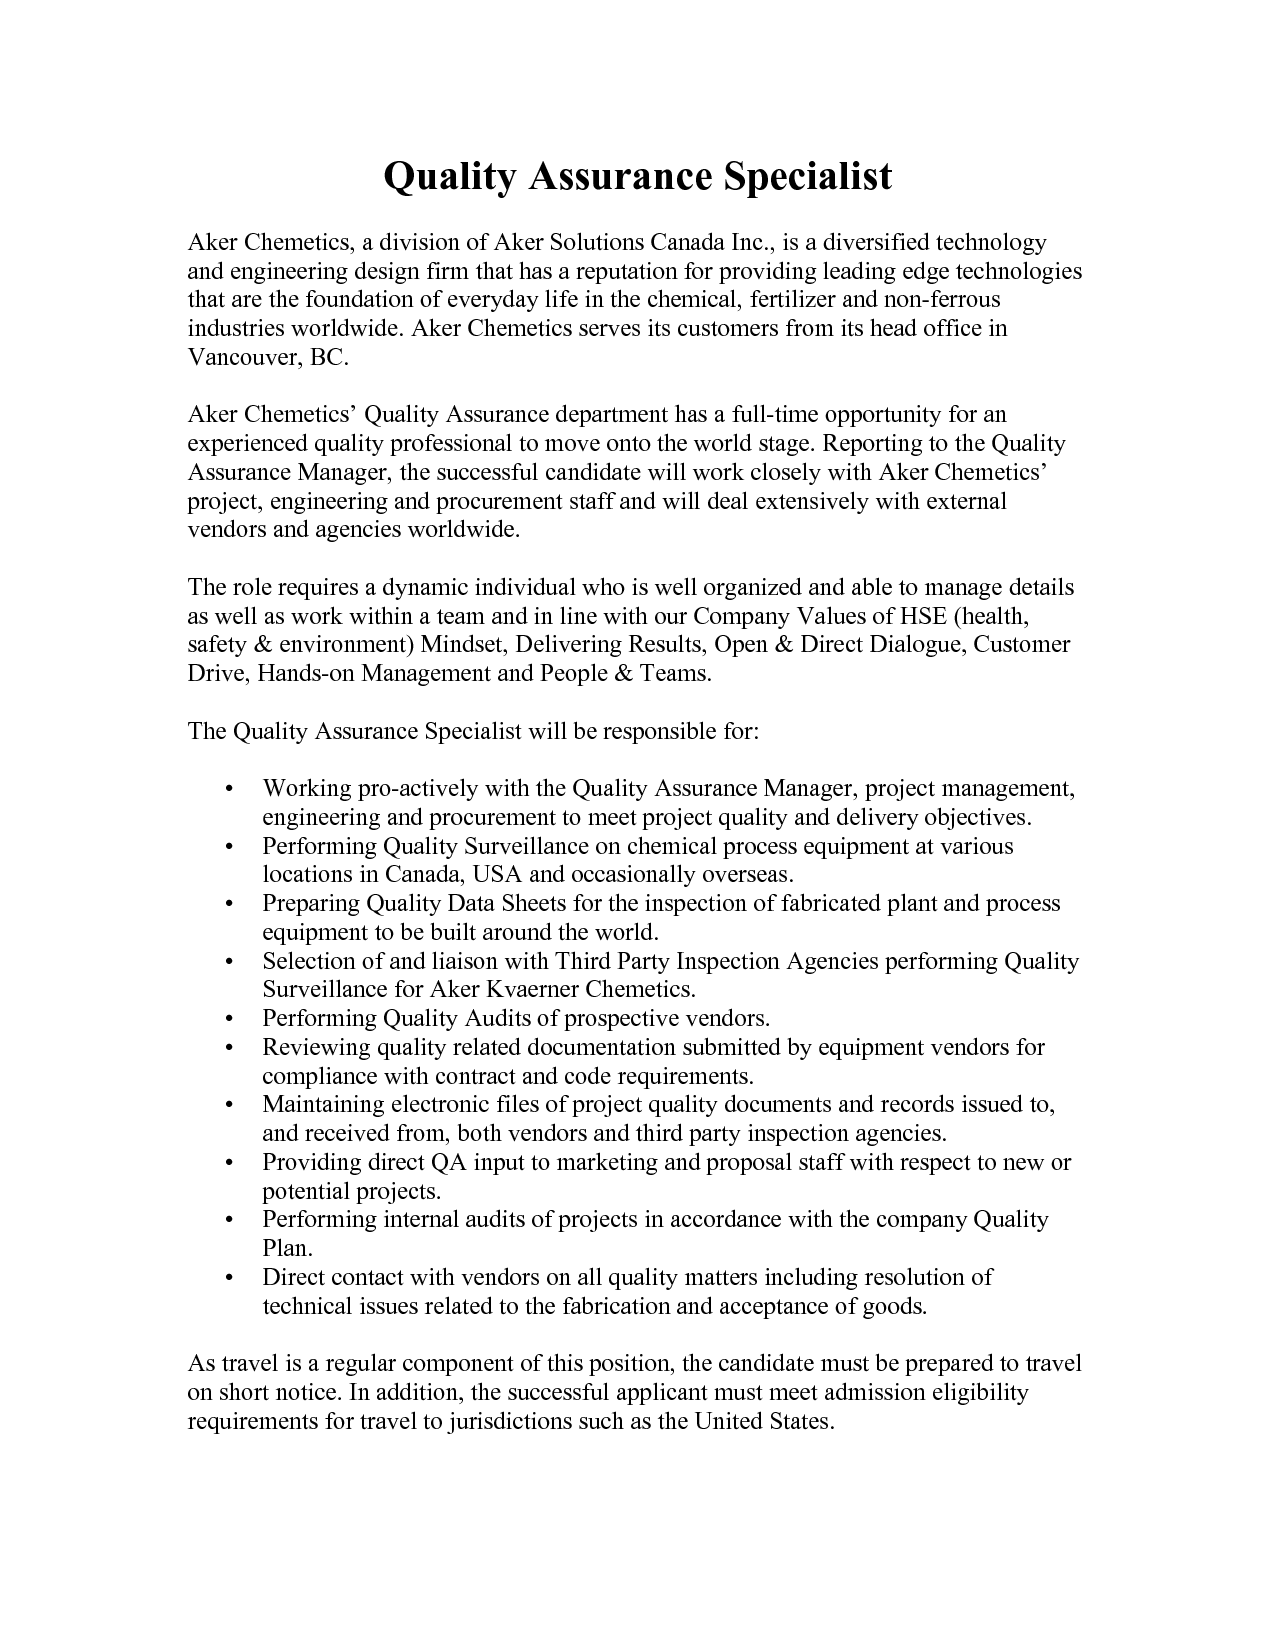 Investment Banking Cover Letter No Experience Banking Cover - Bank risk manager cover letter